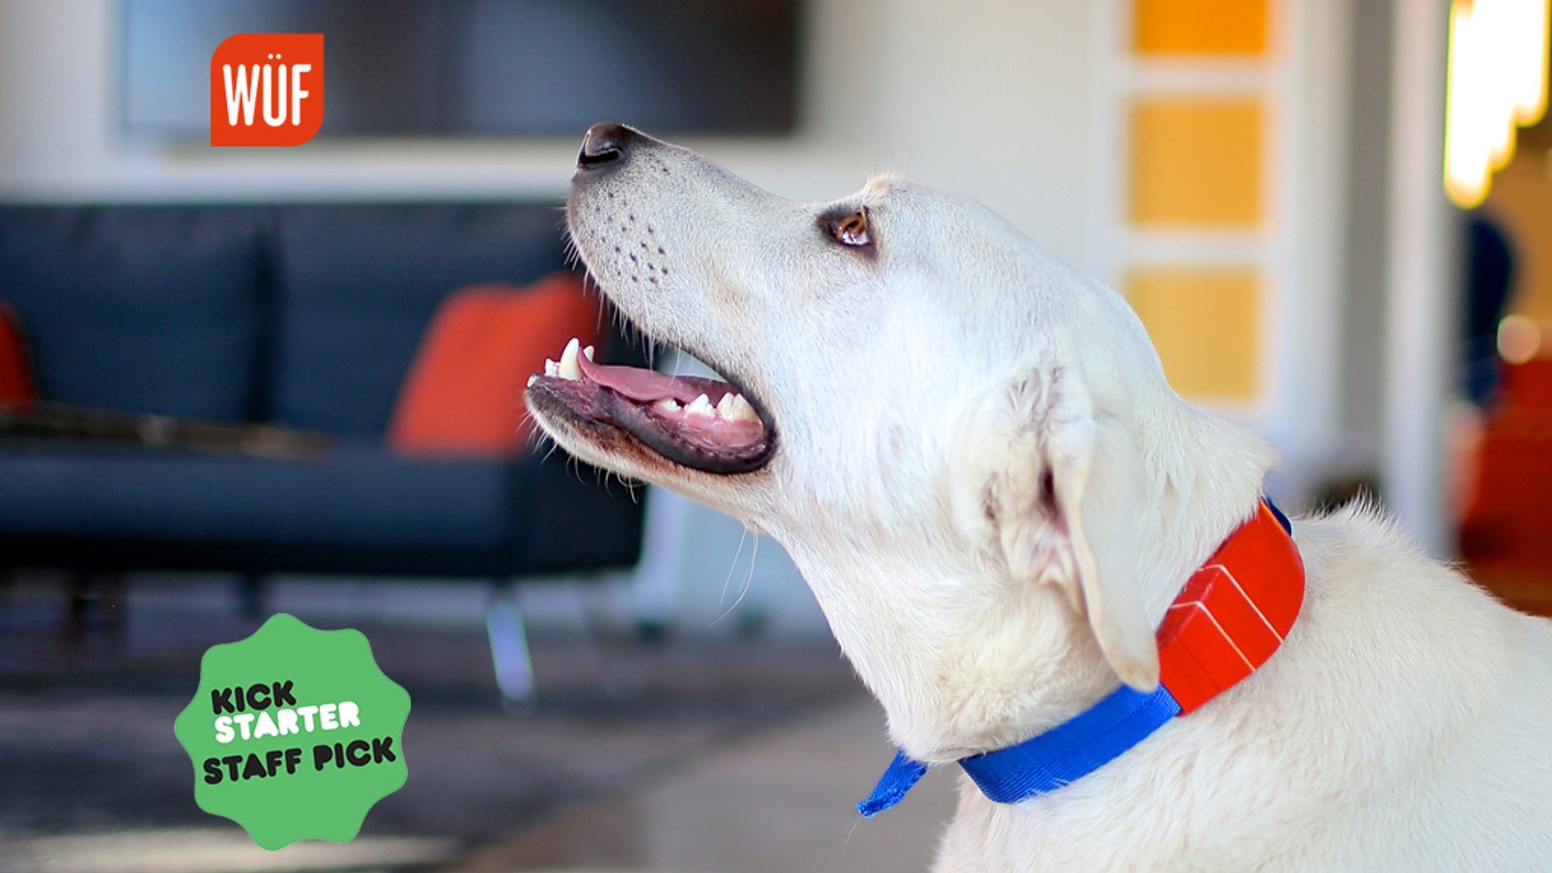 WÜF is building the coolest wearable for man's best friend. Location, activity and audio provide insights into your dog's life like never seen before.